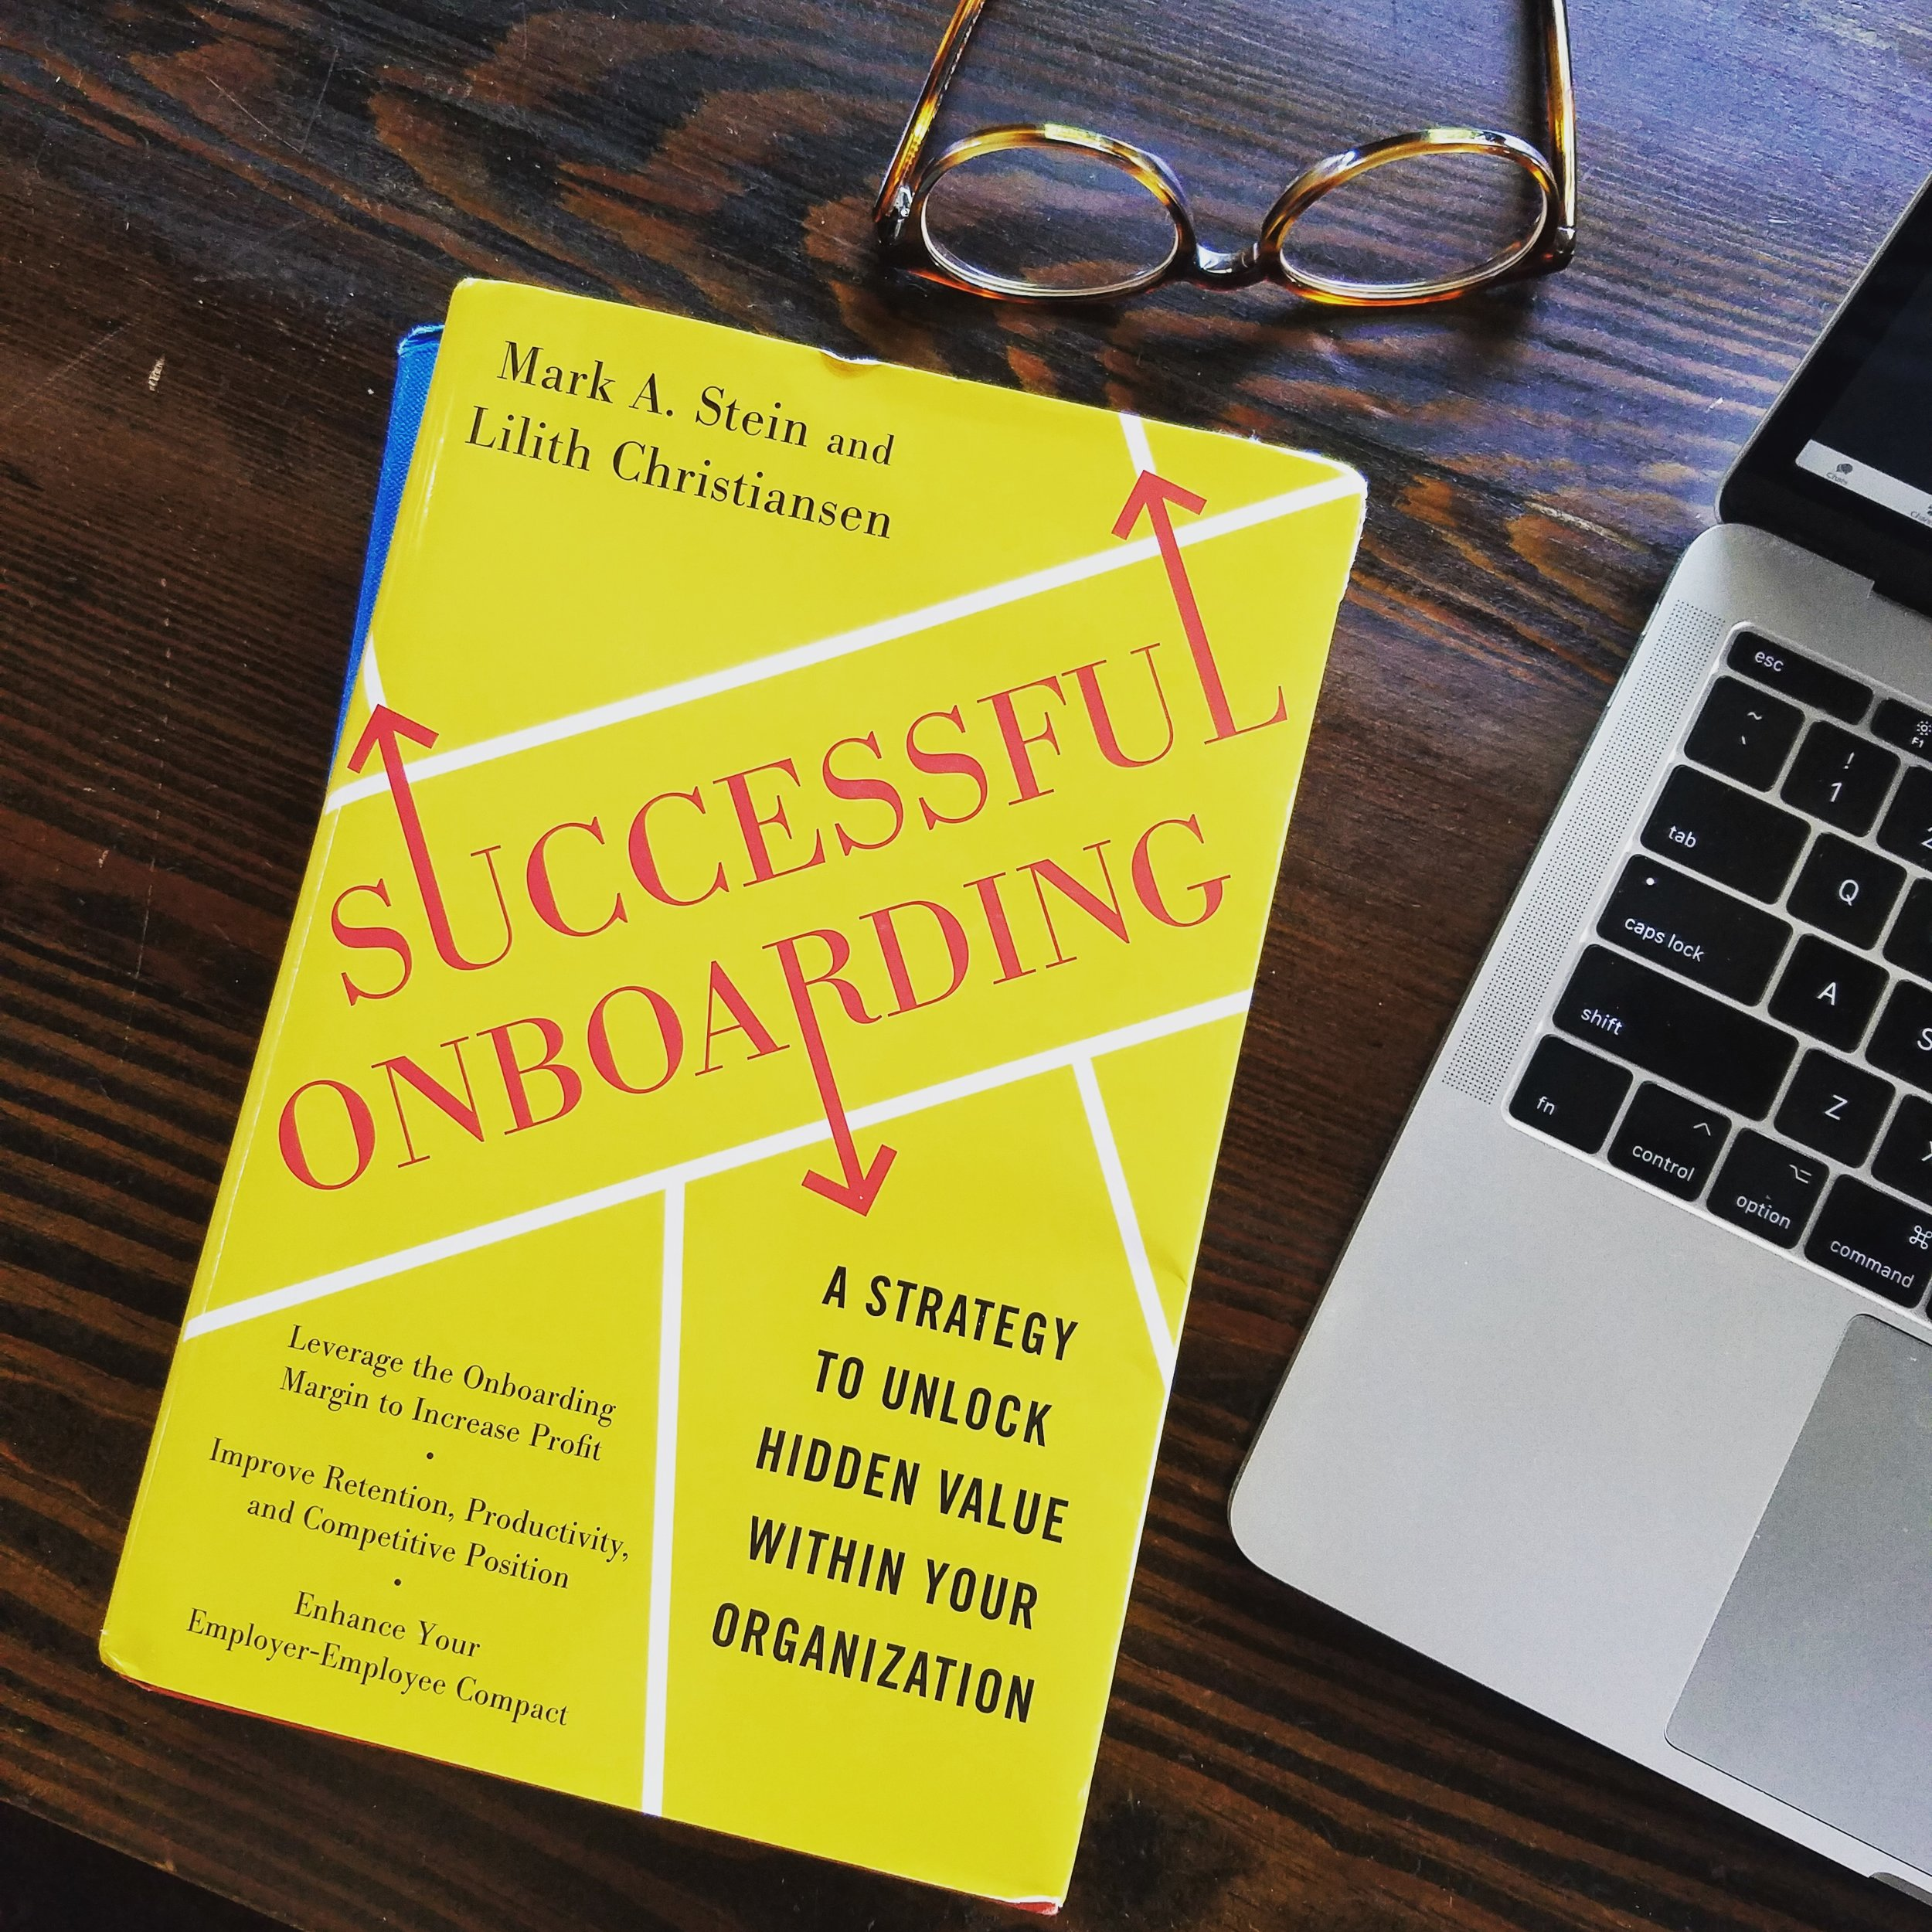 Successful Onboarding: Strategies to Unlock Hidden Value Within Your Organization by Mark Stein and Lilith Christiansen